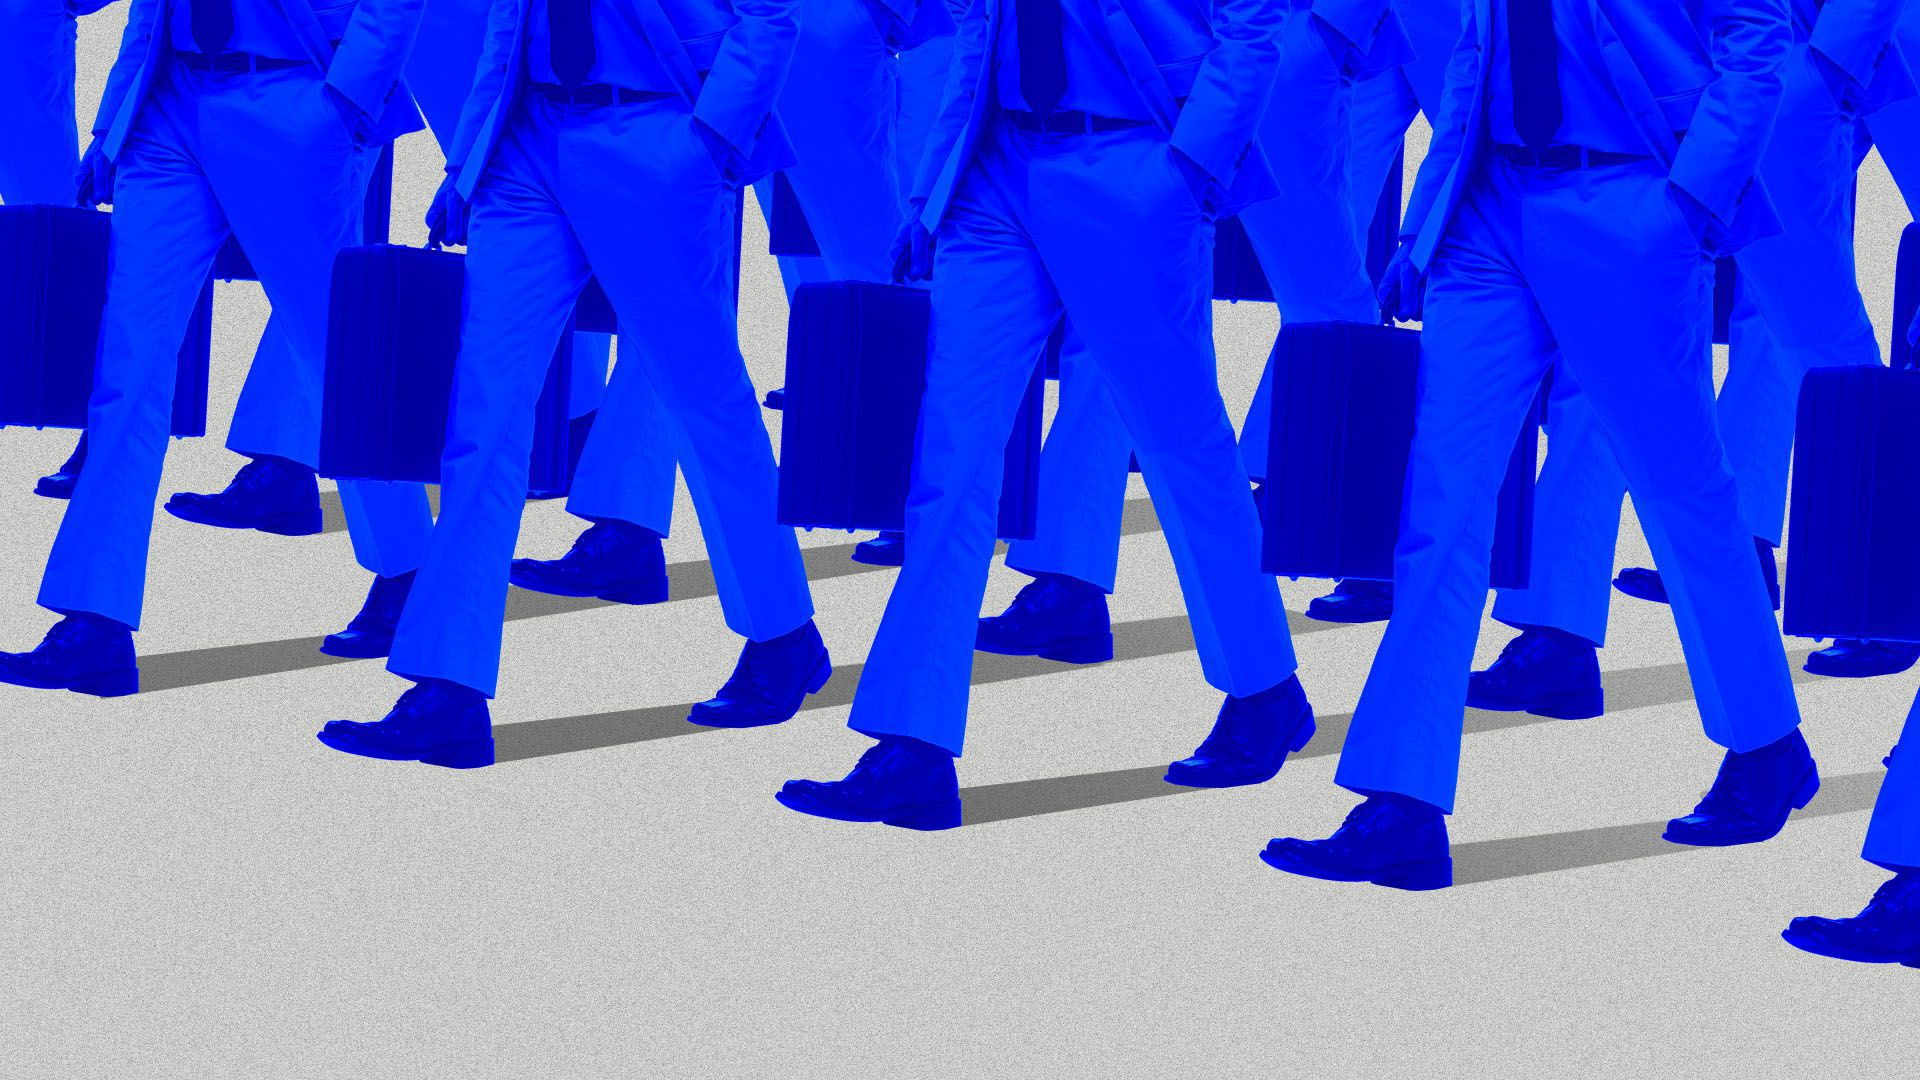 Illustration of ranks of legs and briefcases in blue